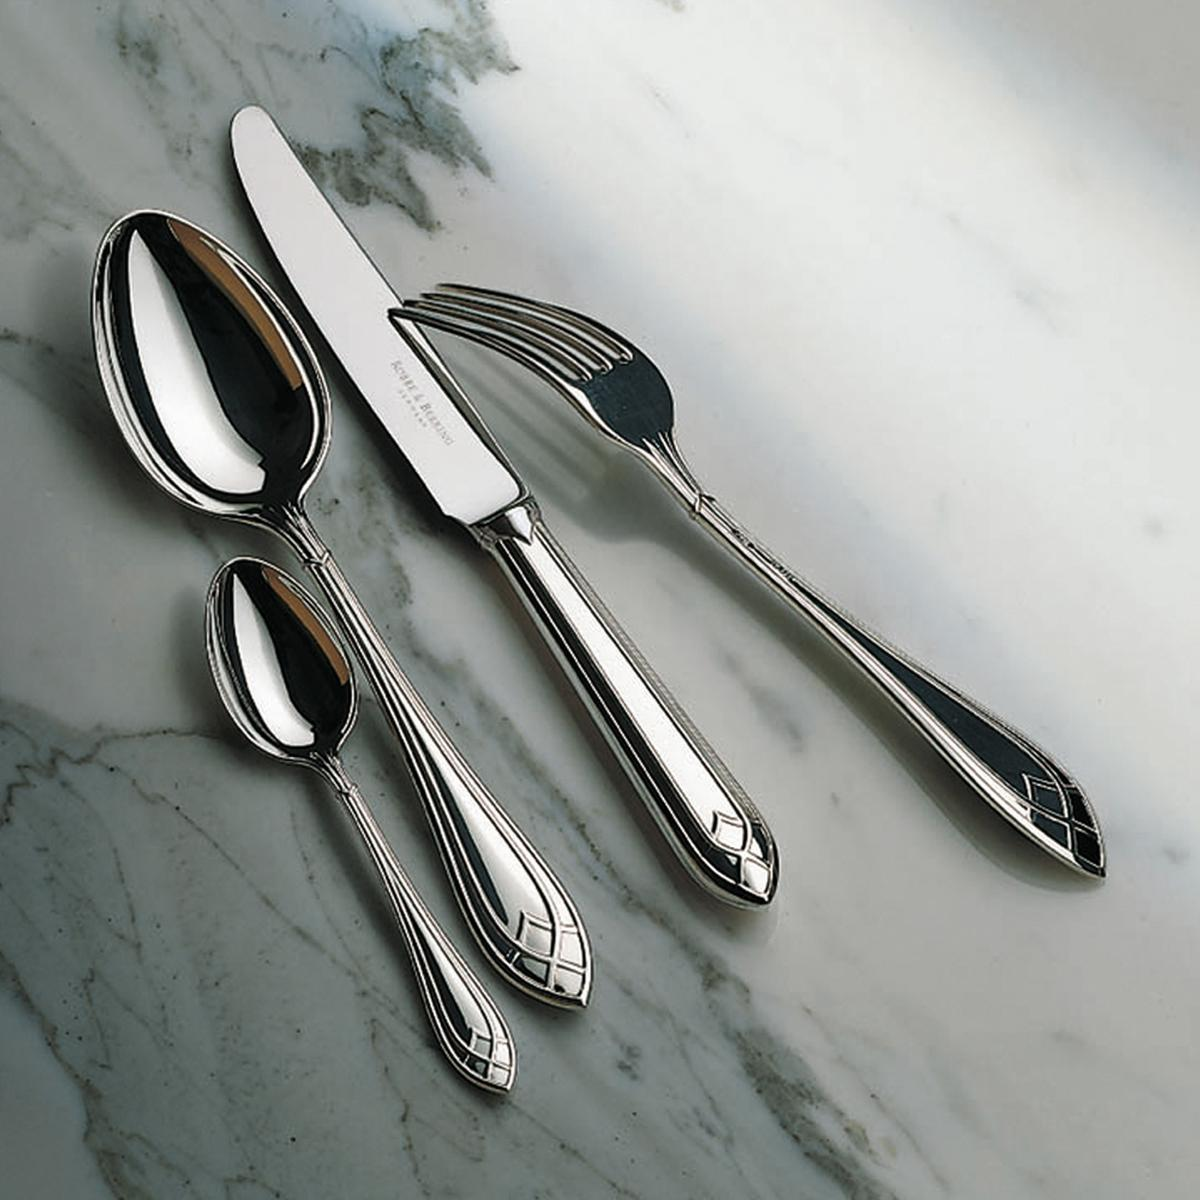 robbe berking arcade cutlery silverplated. Black Bedroom Furniture Sets. Home Design Ideas